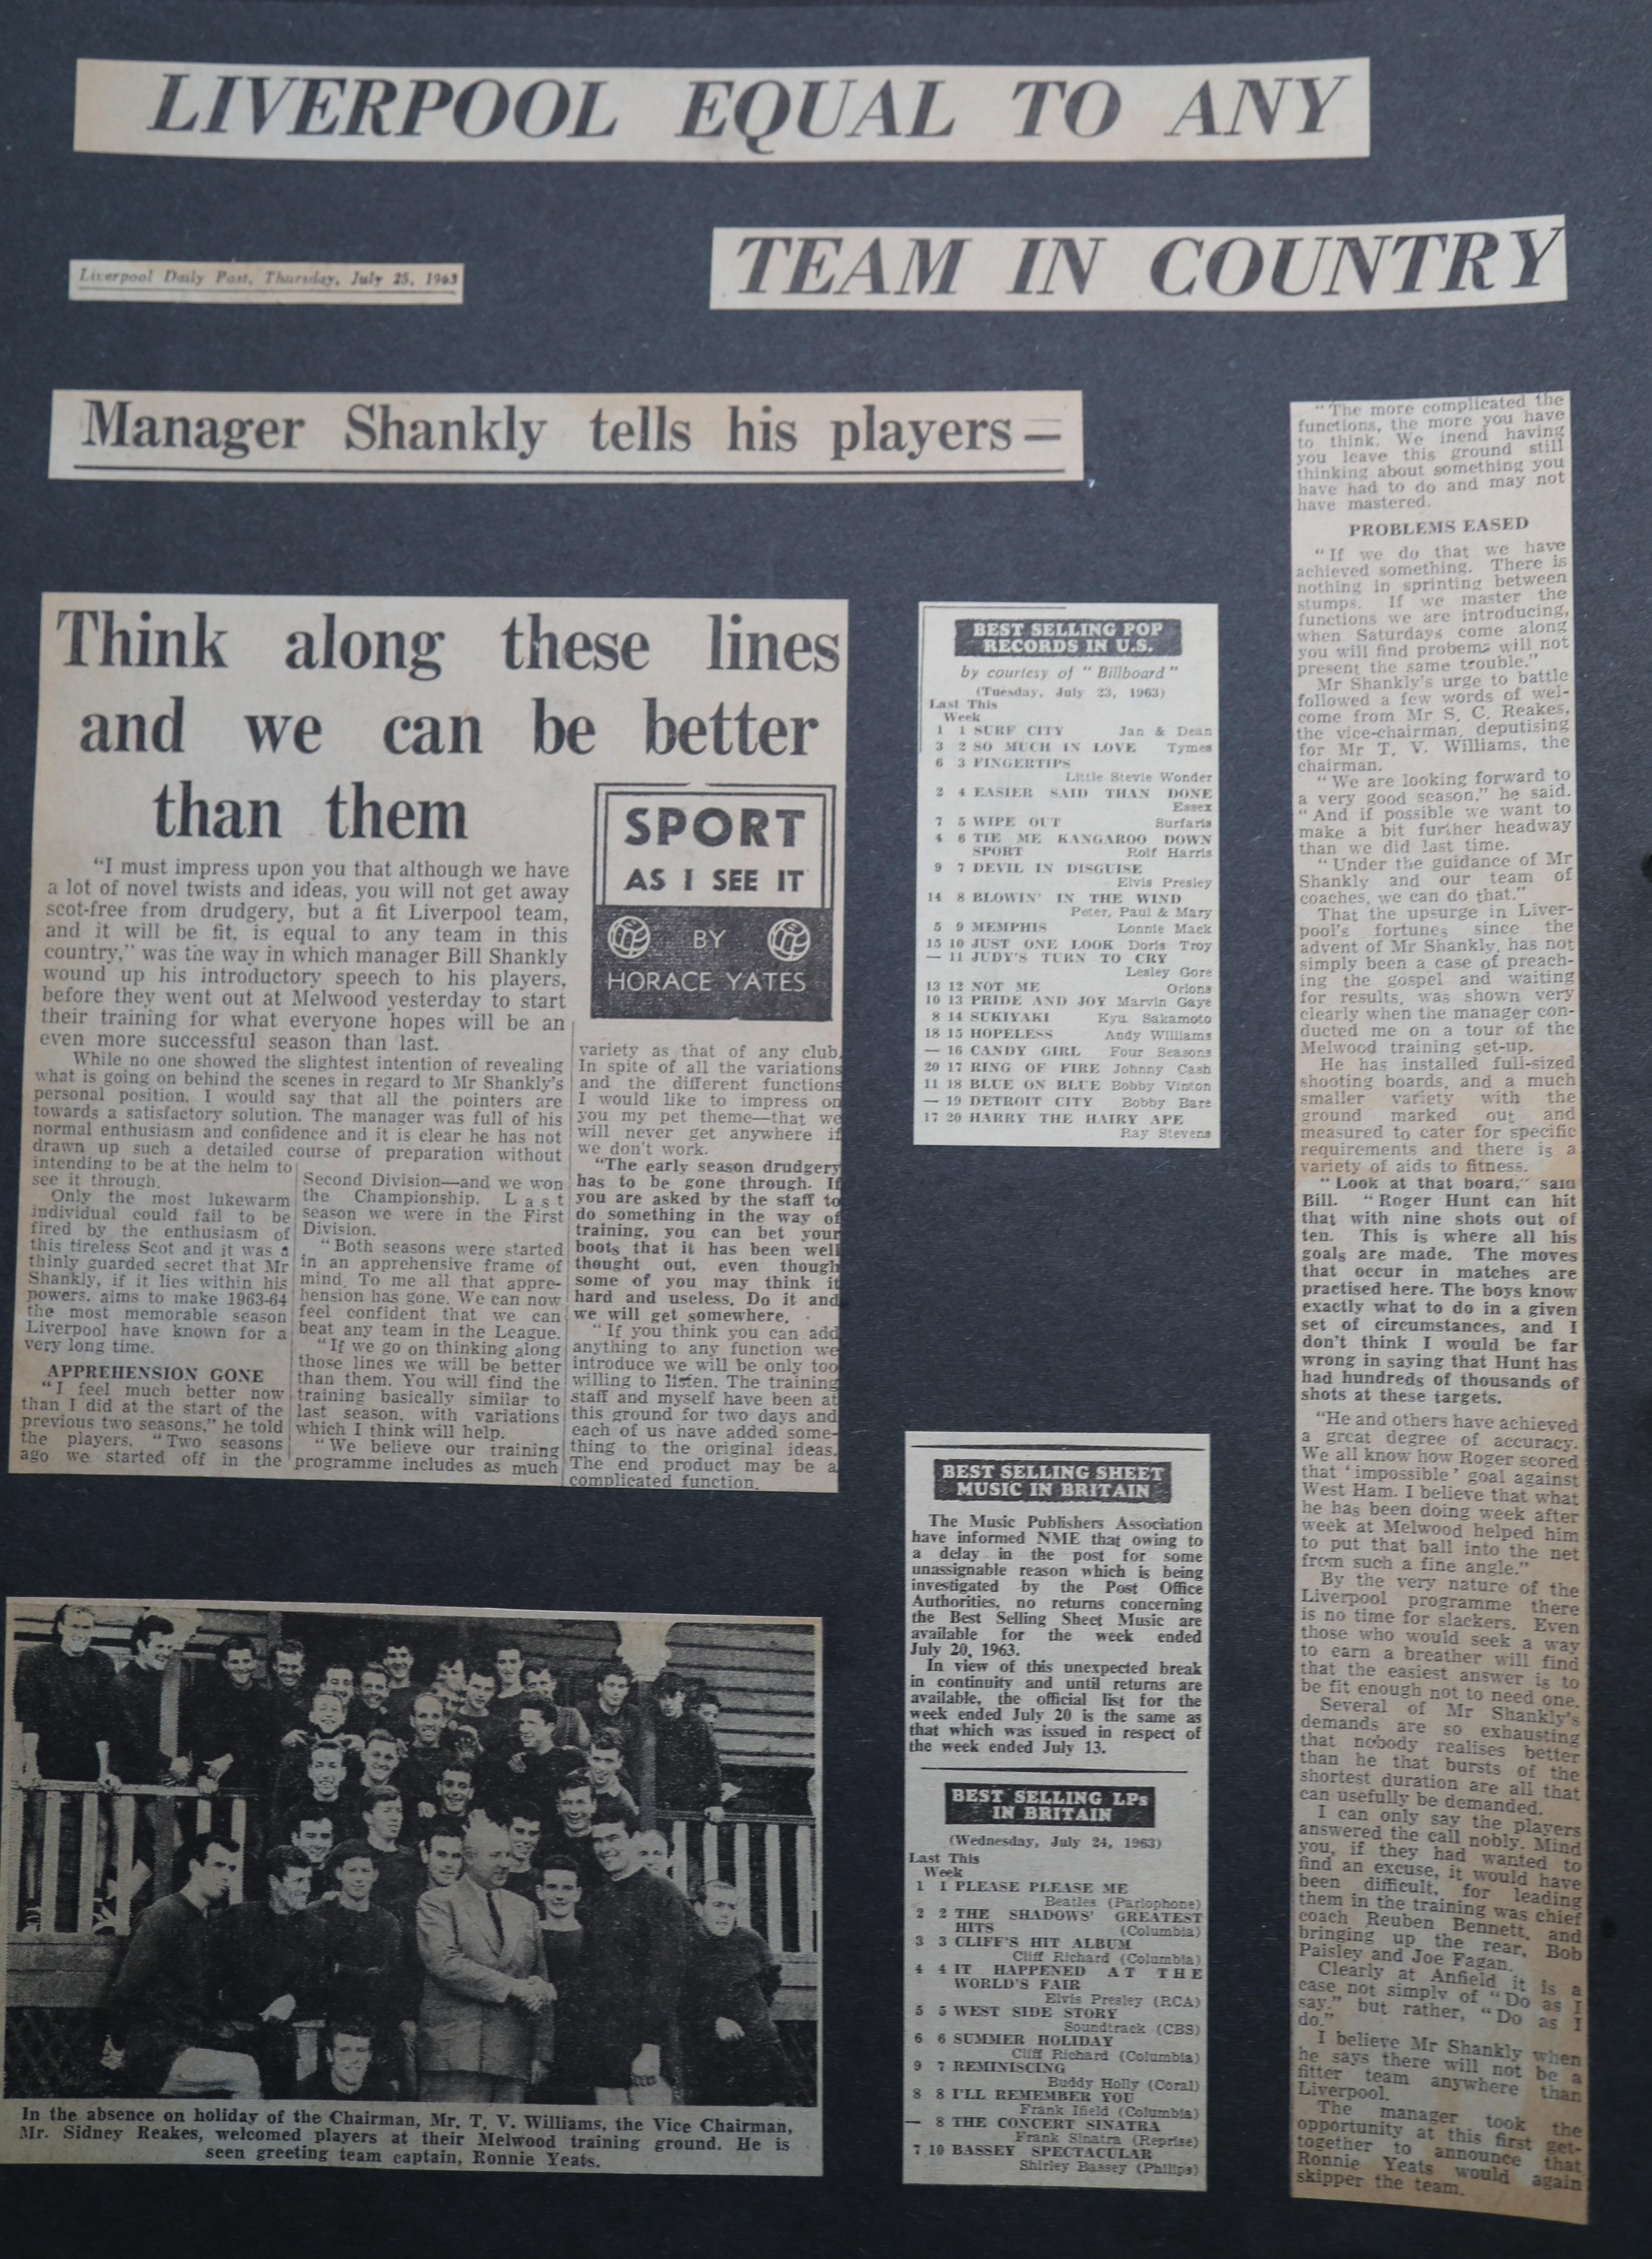 Liverpool equal to any team in the country - 25 July 1963